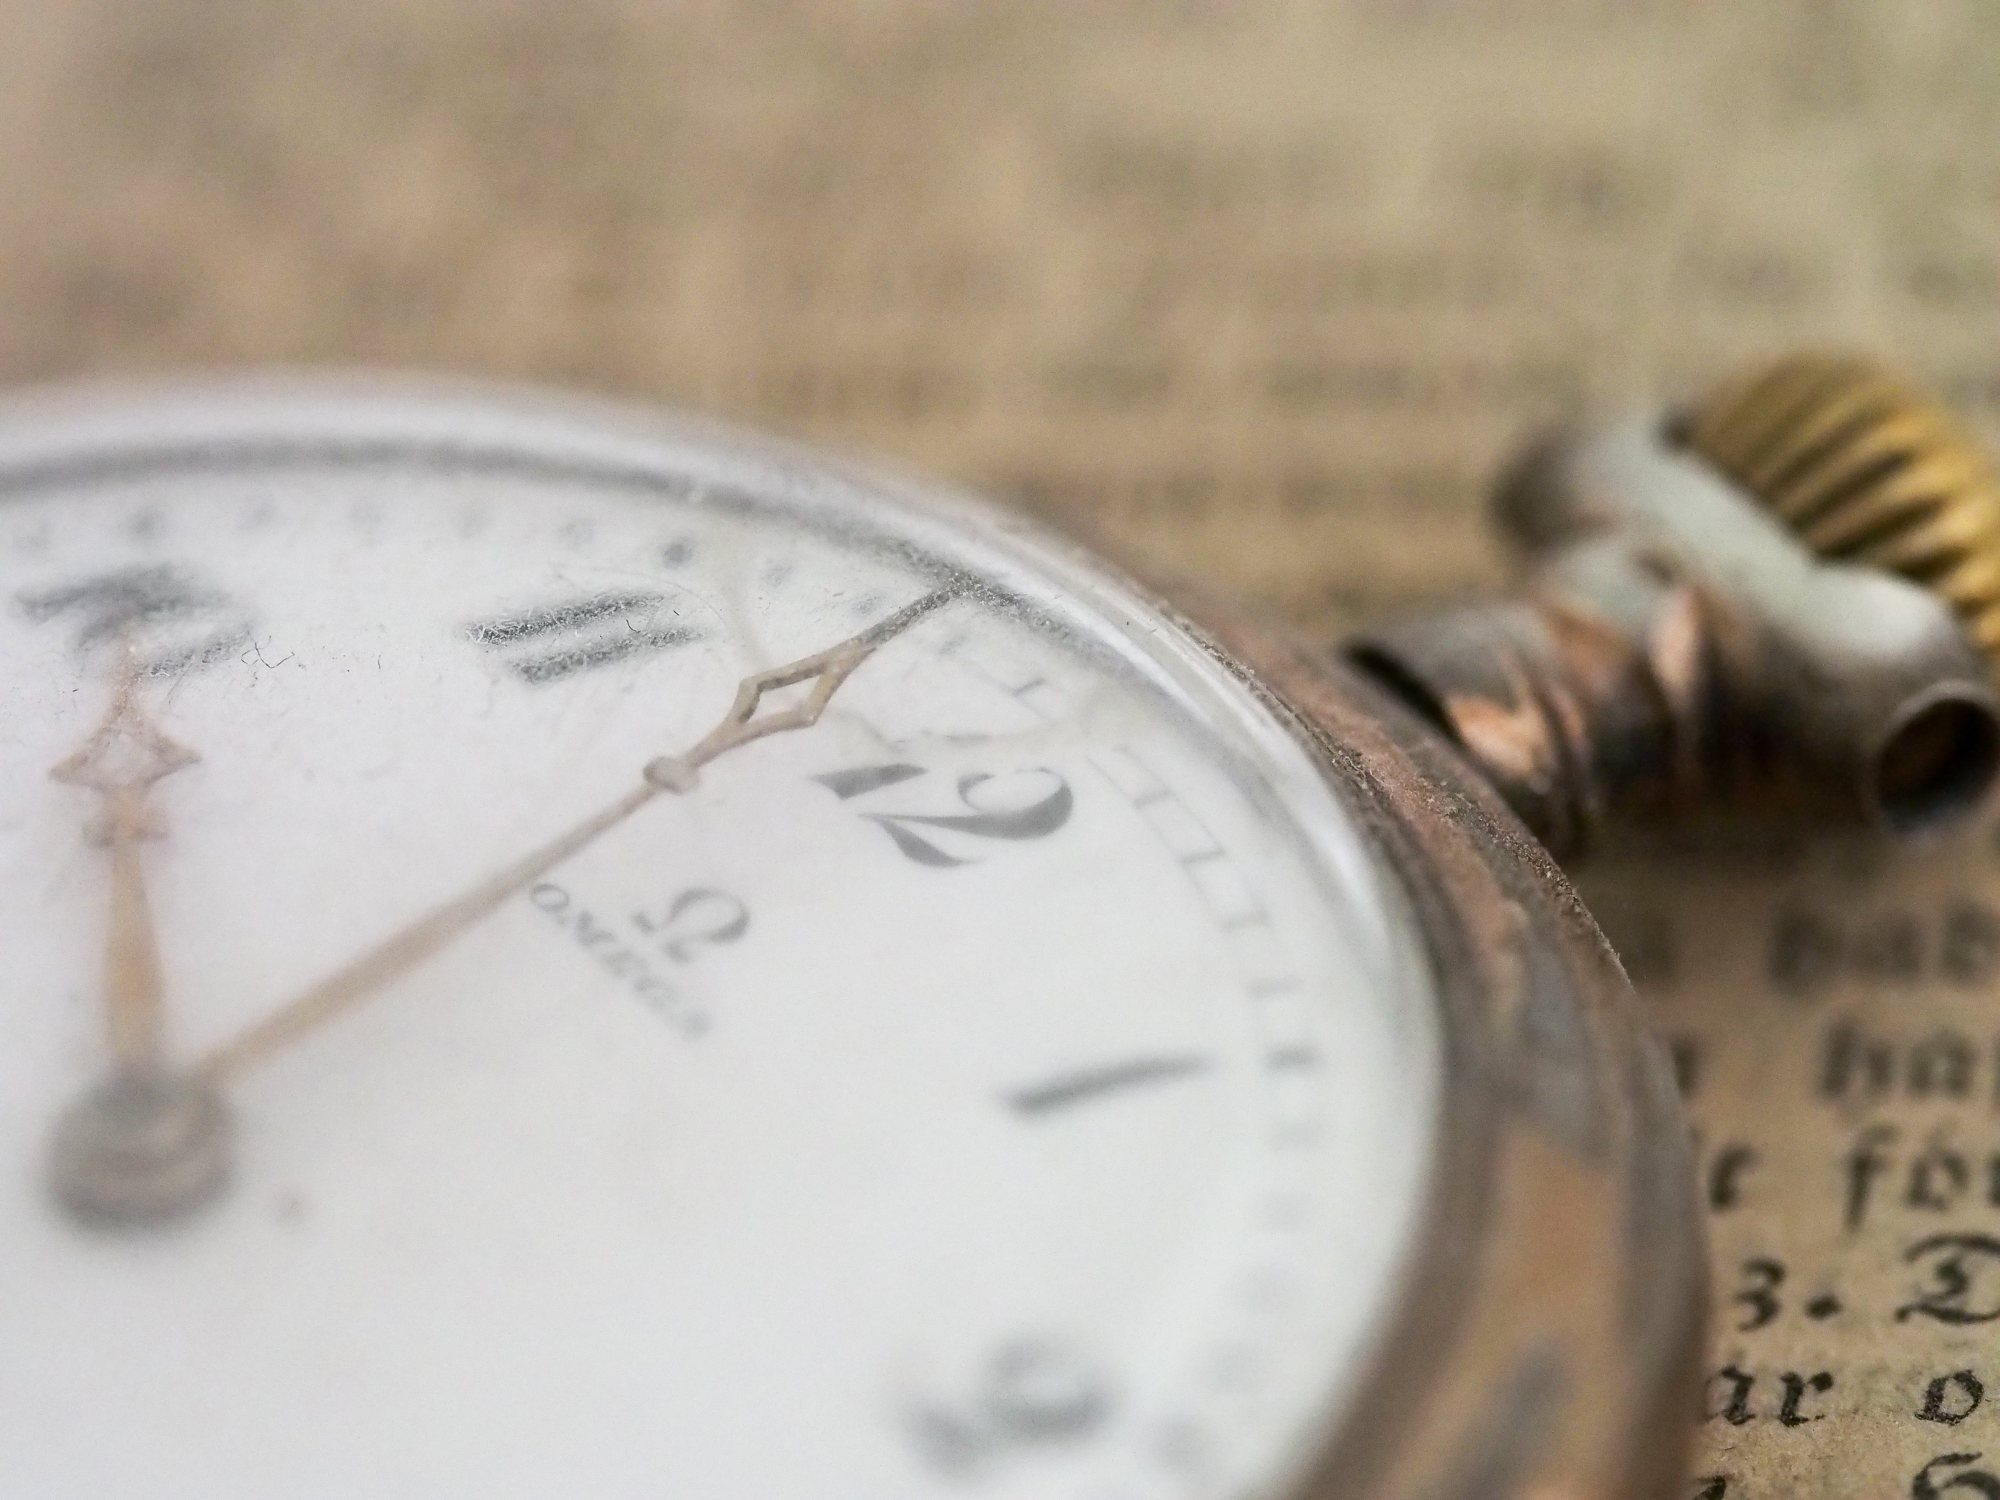 Close up image of a pocket watch